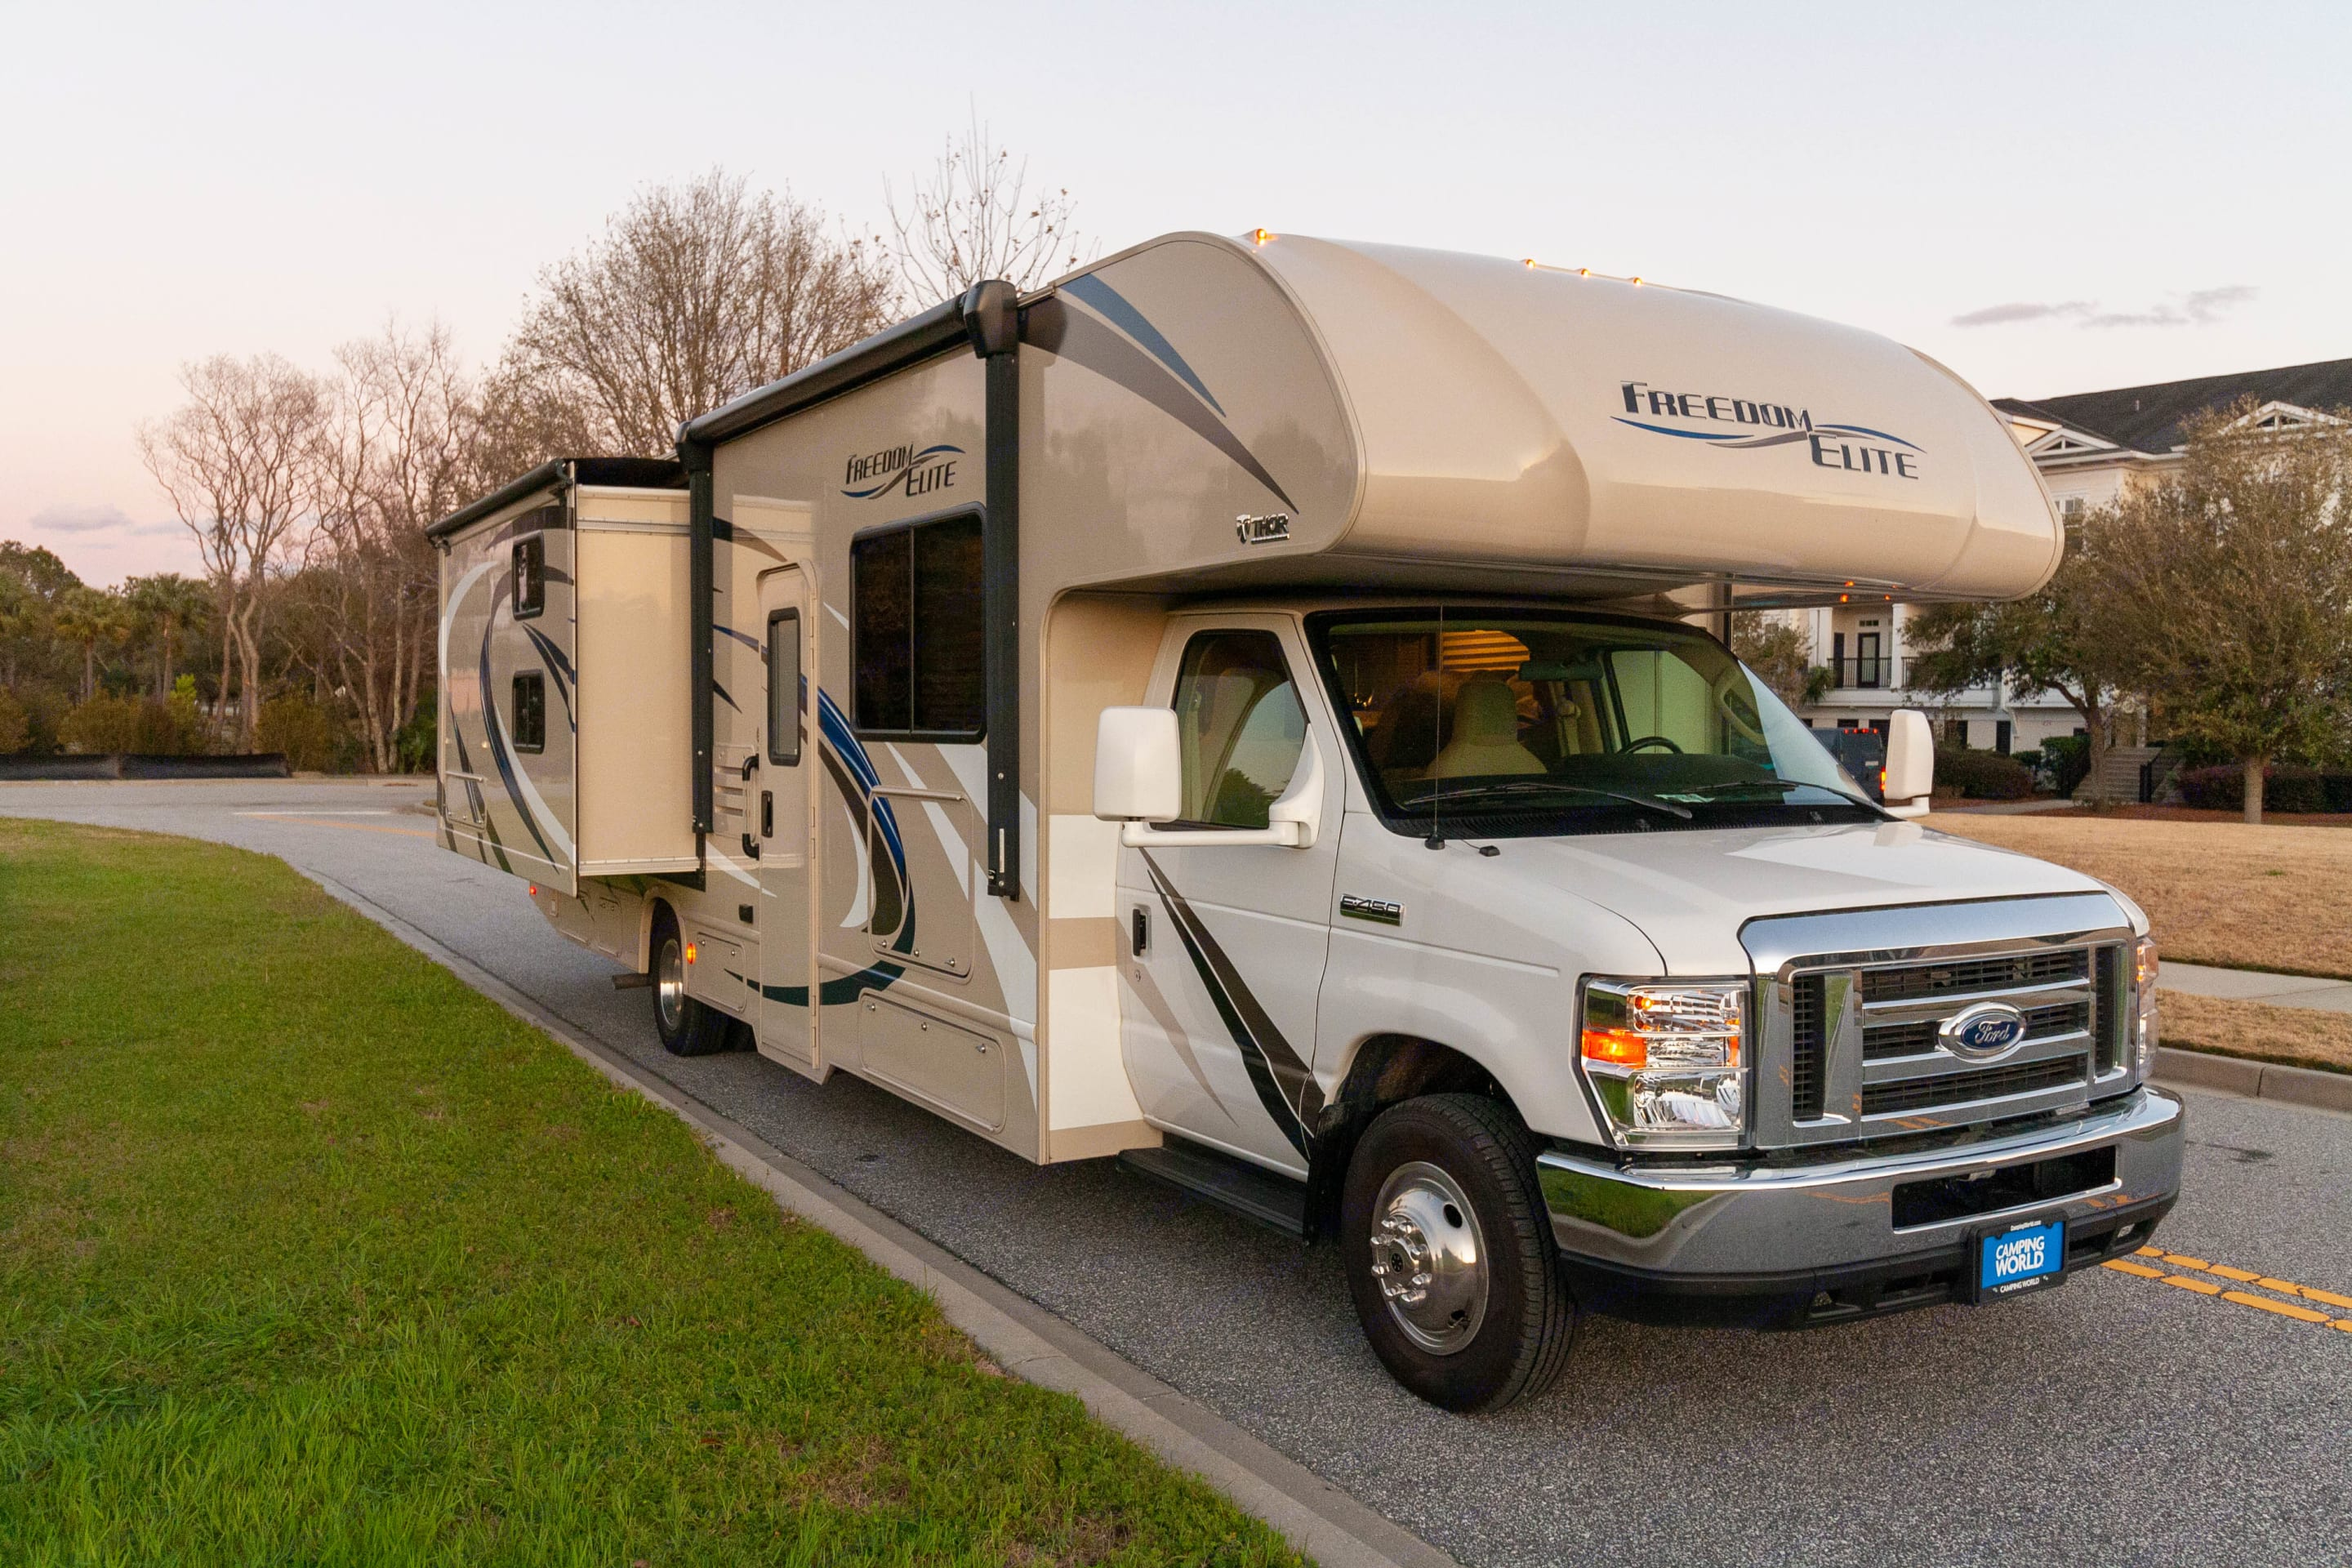 32 feet in length with extensions on both sides. Thor Motor Coach Freedom Elite 2019